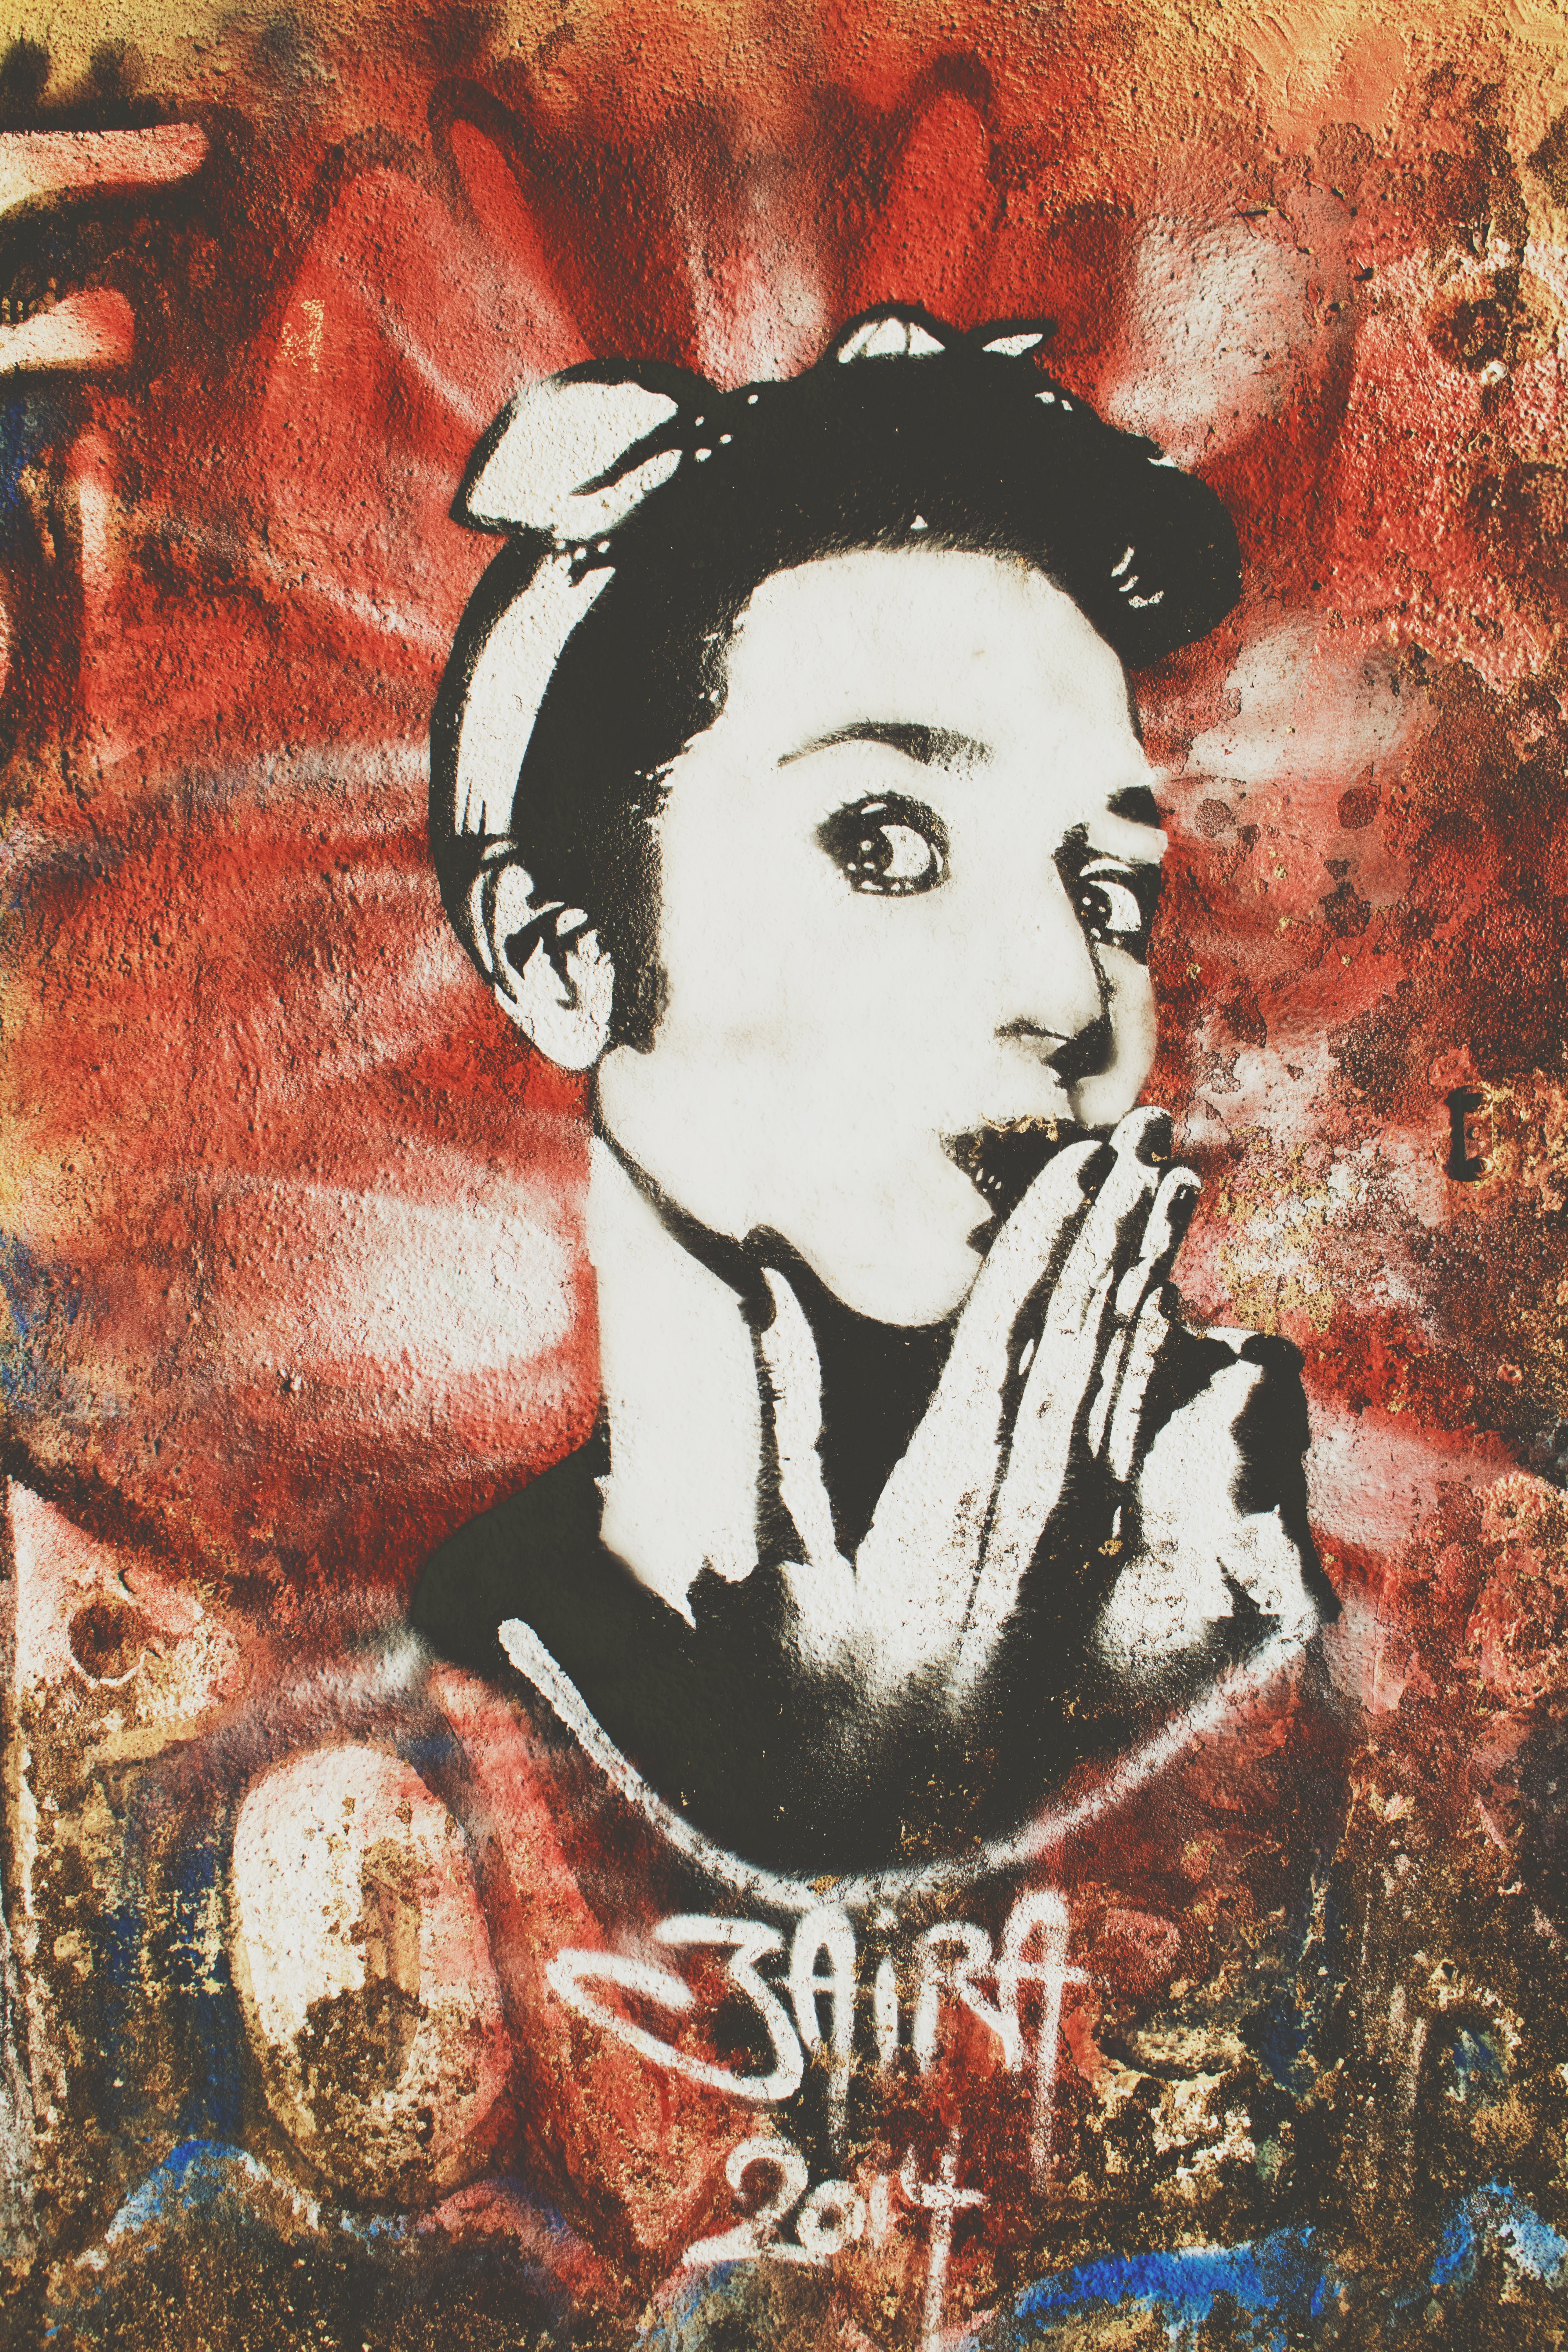 Black and white graffiti artwork of woman blowing kiss on red, Indian Institute of Technology Bombay